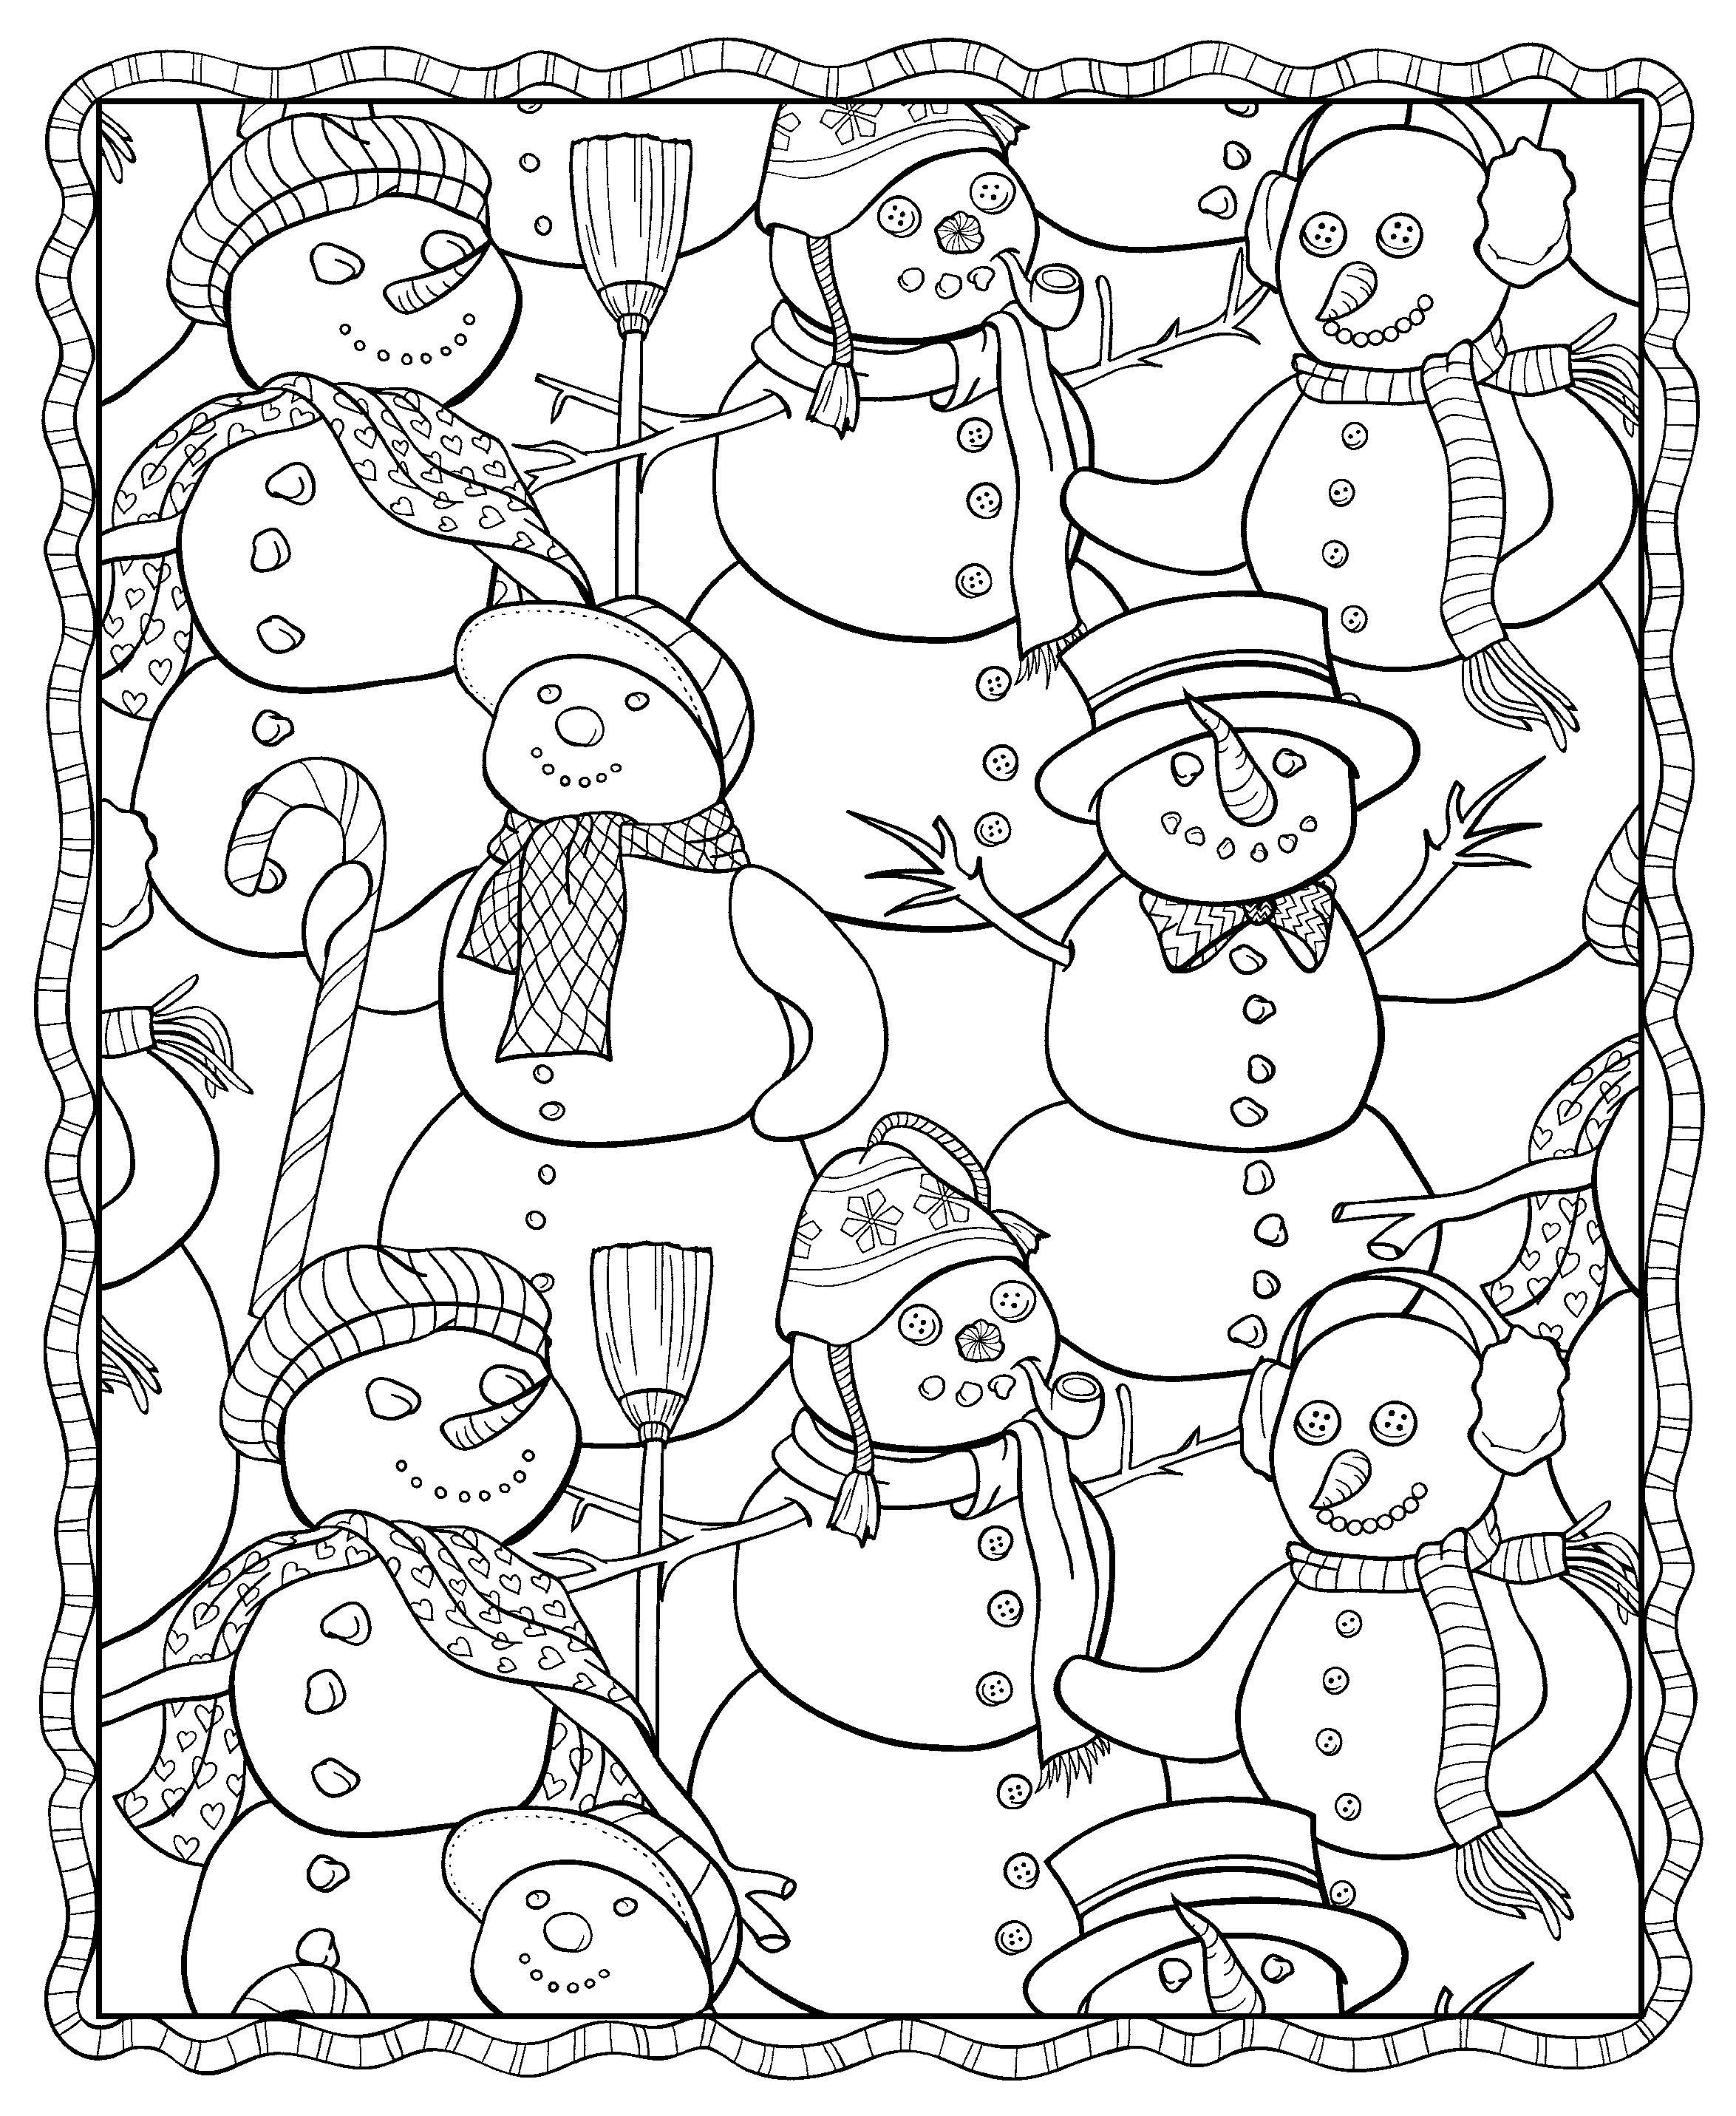 - Winter Coloring Pages For Adults - Best Coloring Pages For Kids